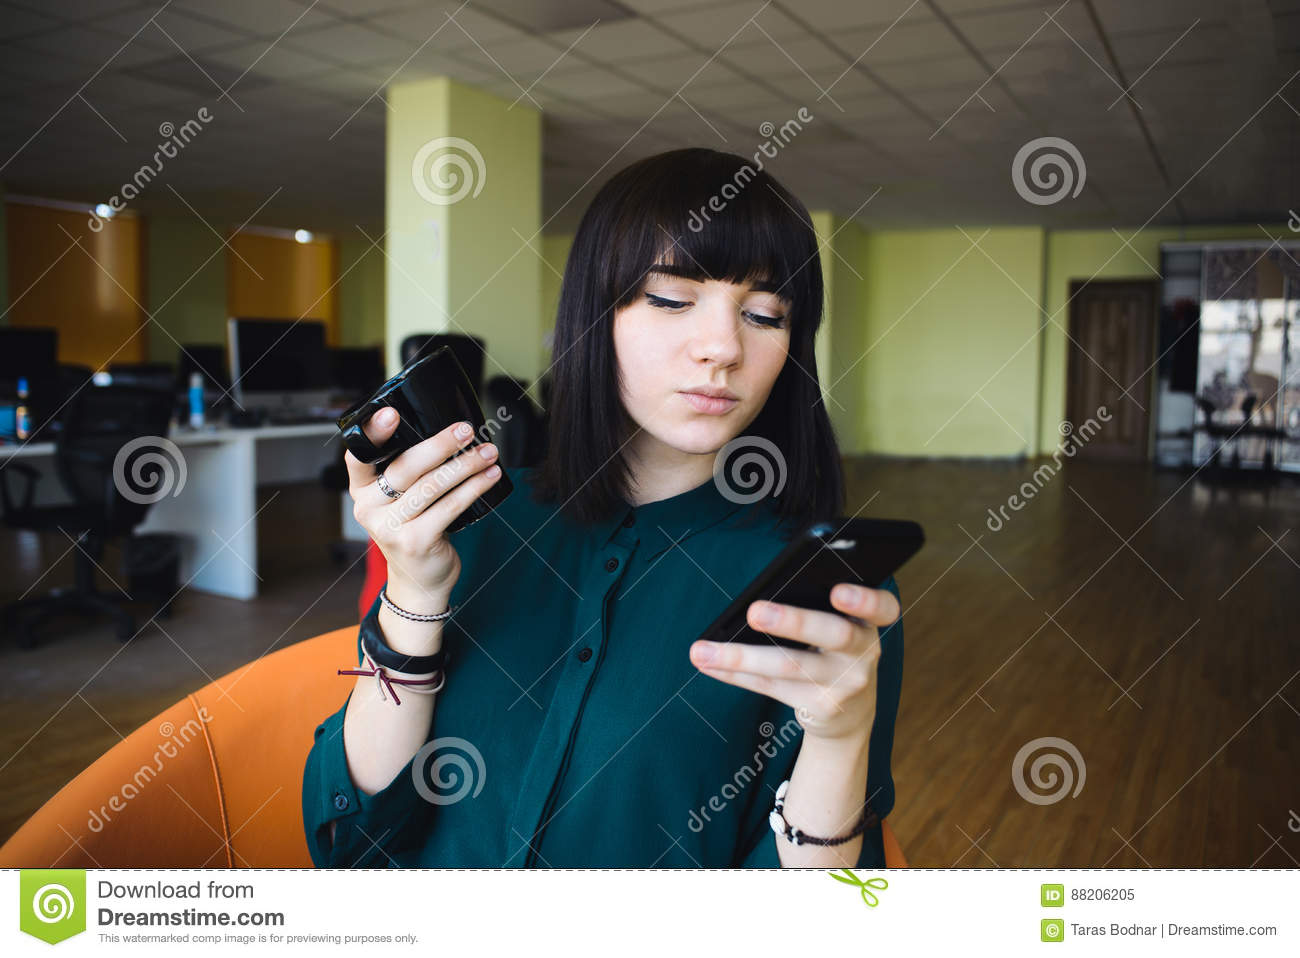 Portrait of a young, beautiful woman office worker who uses a mobile phone and holding a cup of drink.